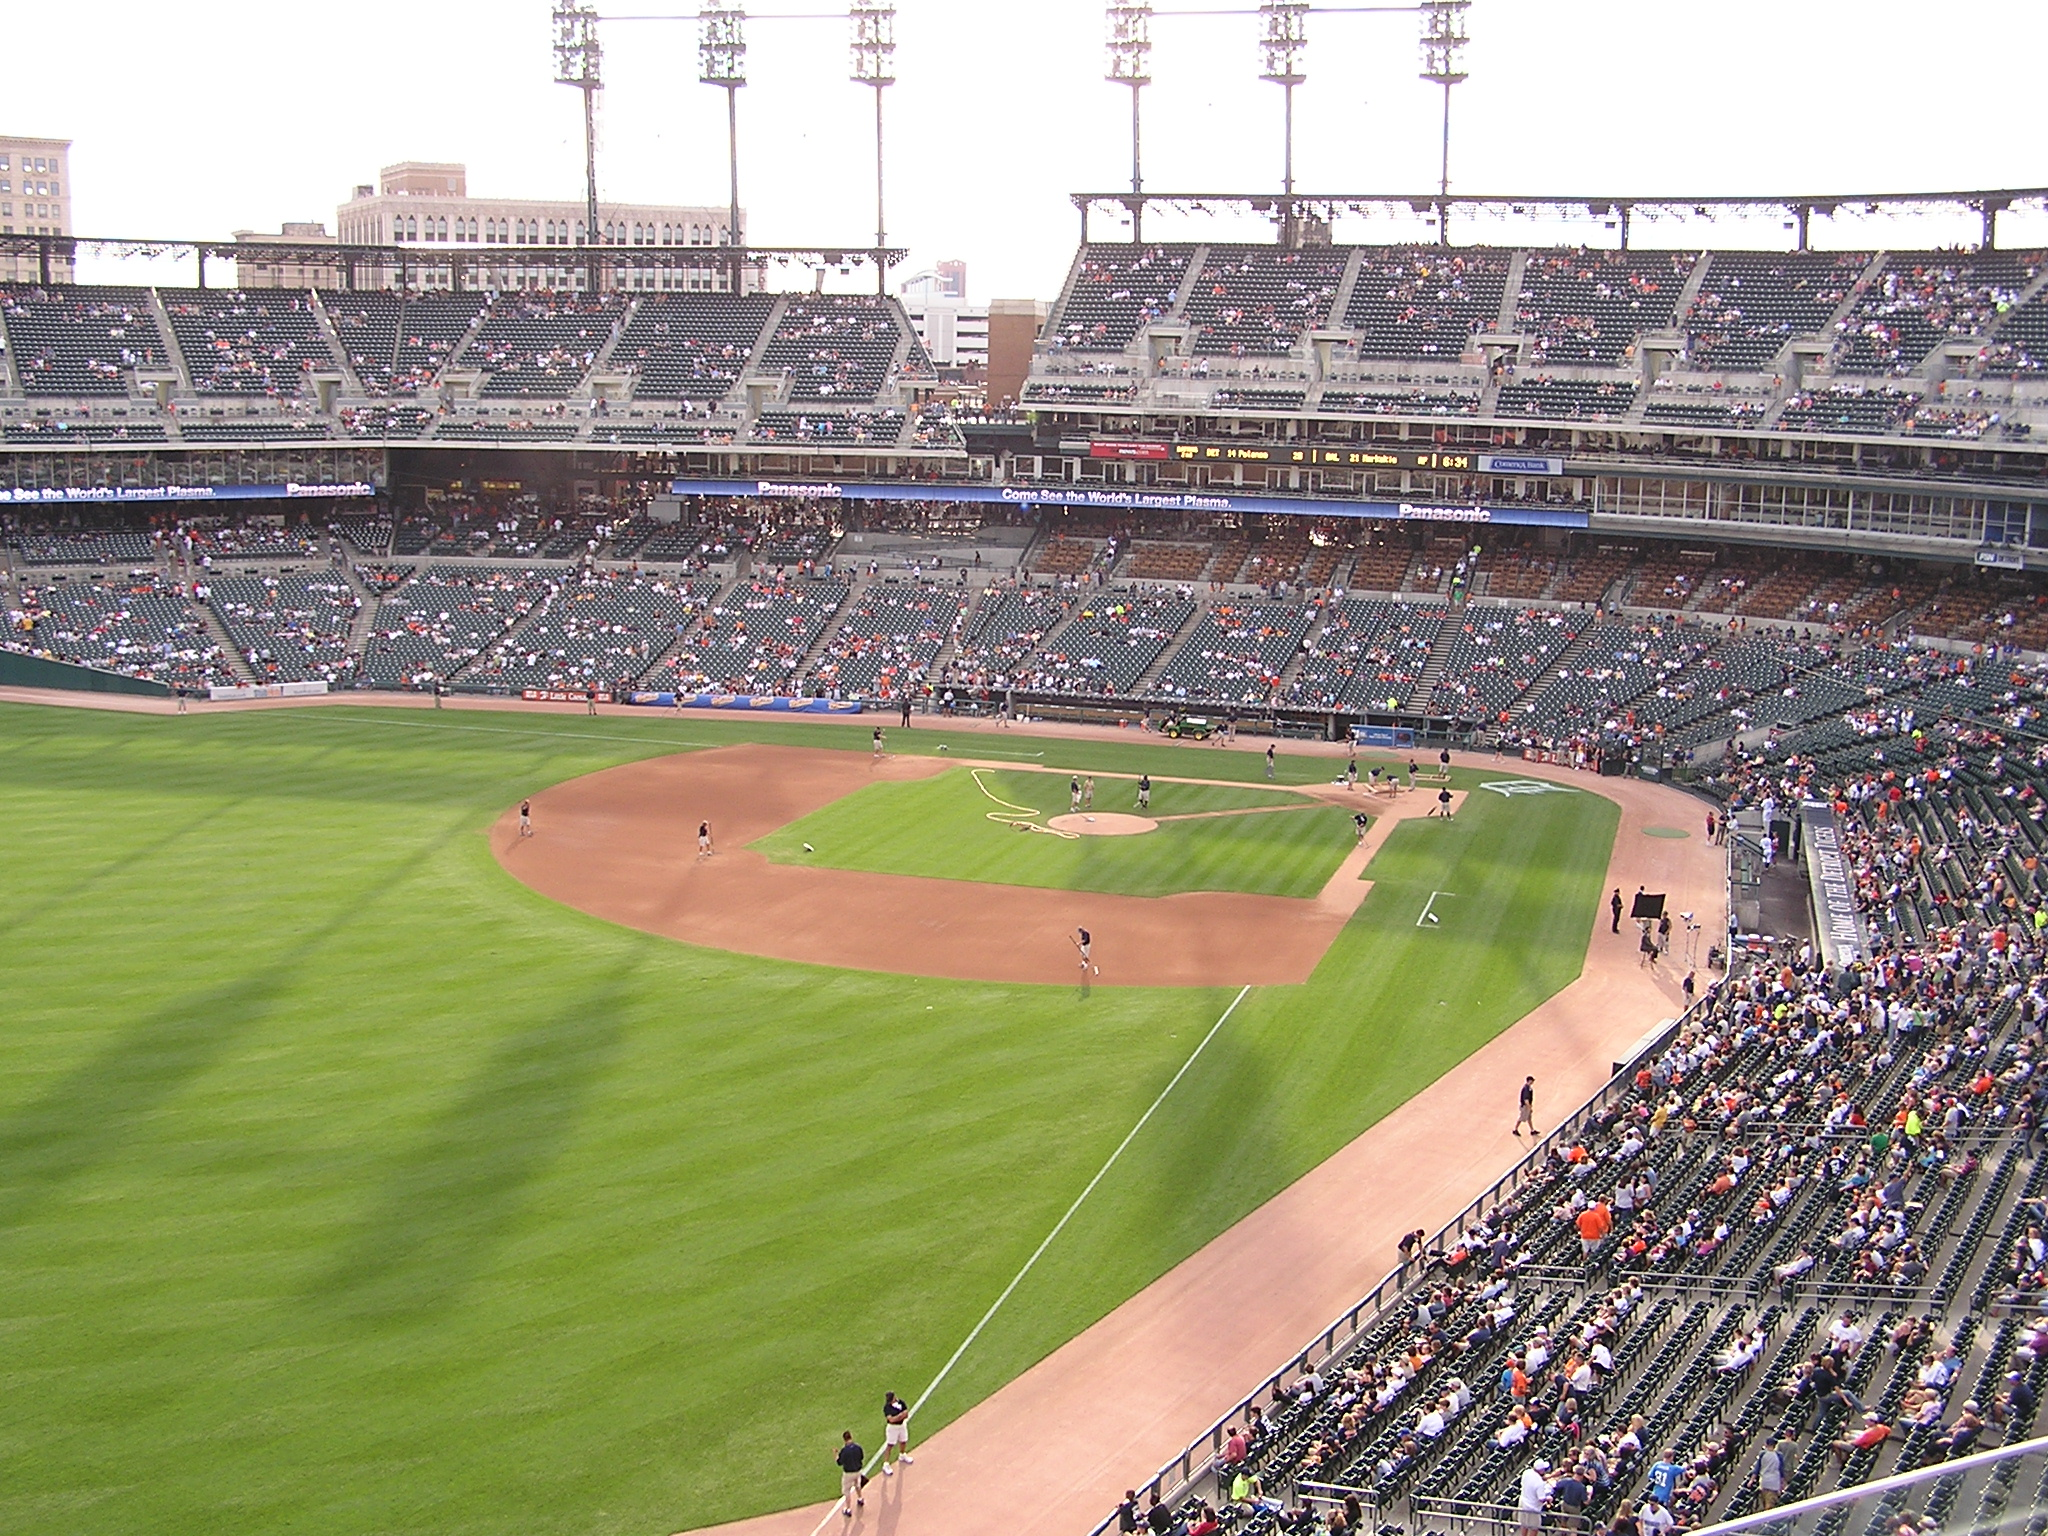 Looking in from Left Field, Comerica Park